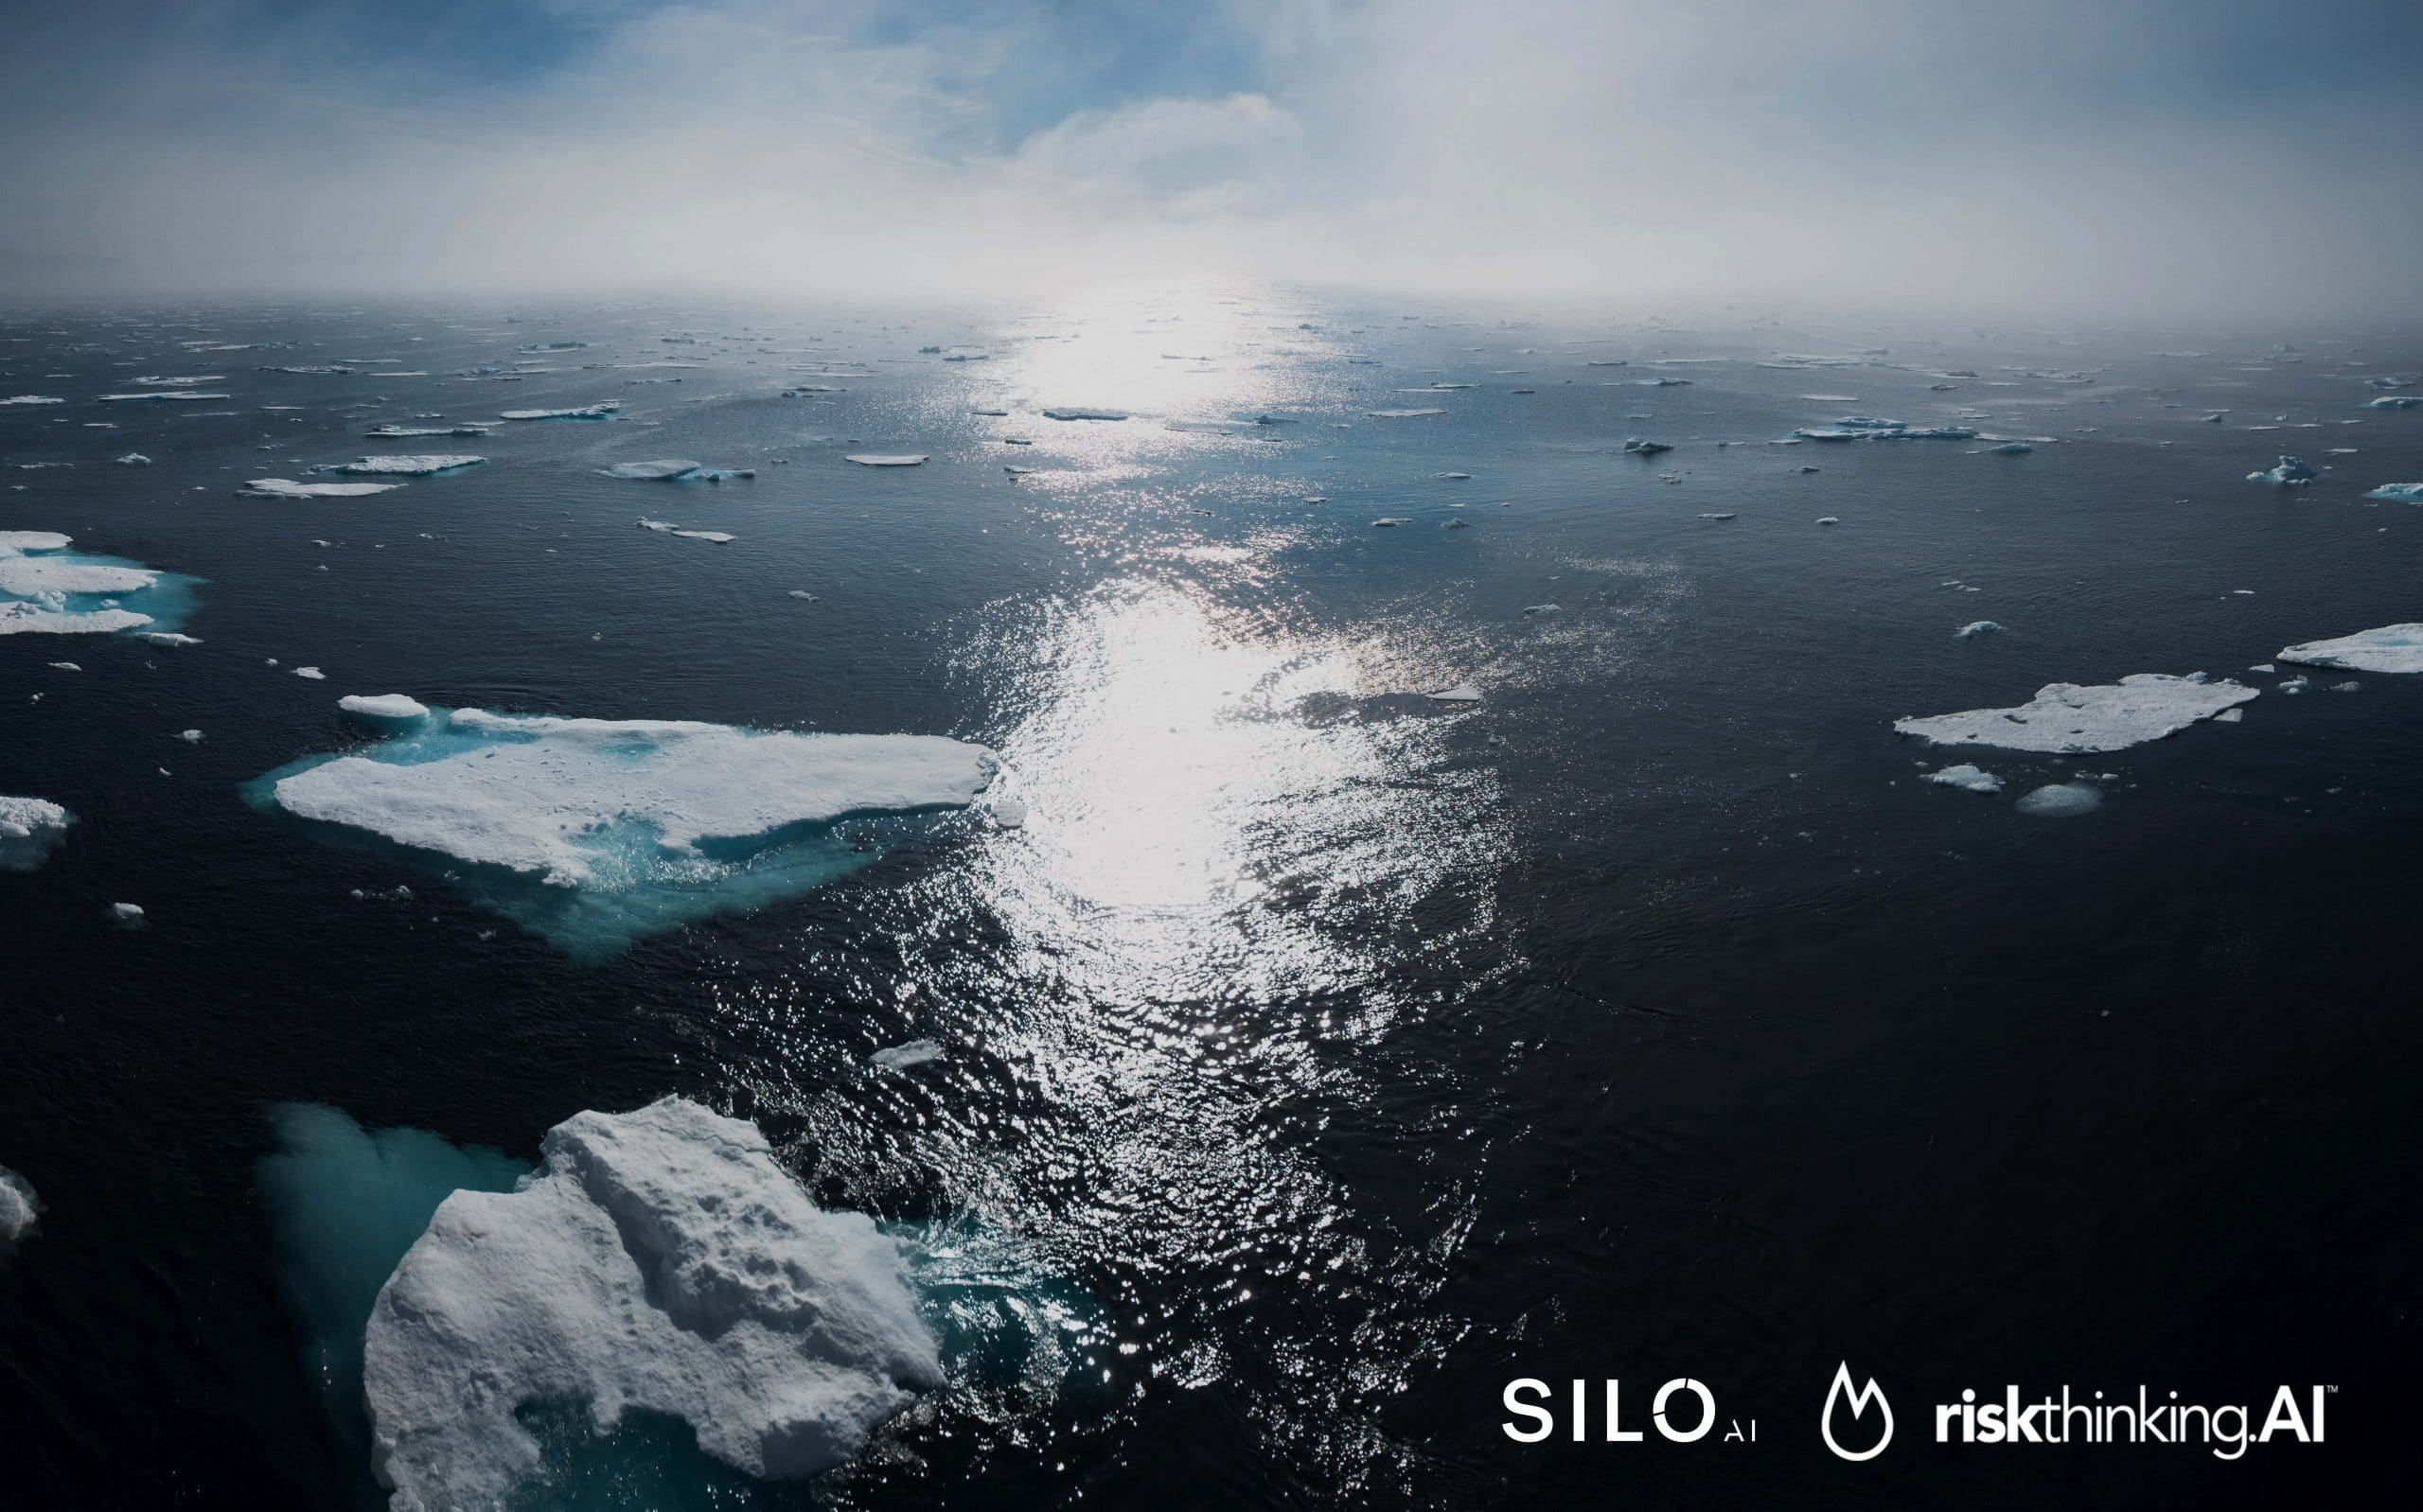 Riskthinking.AI and Silo AI co-create an AI solution to automatically extract climate risk data